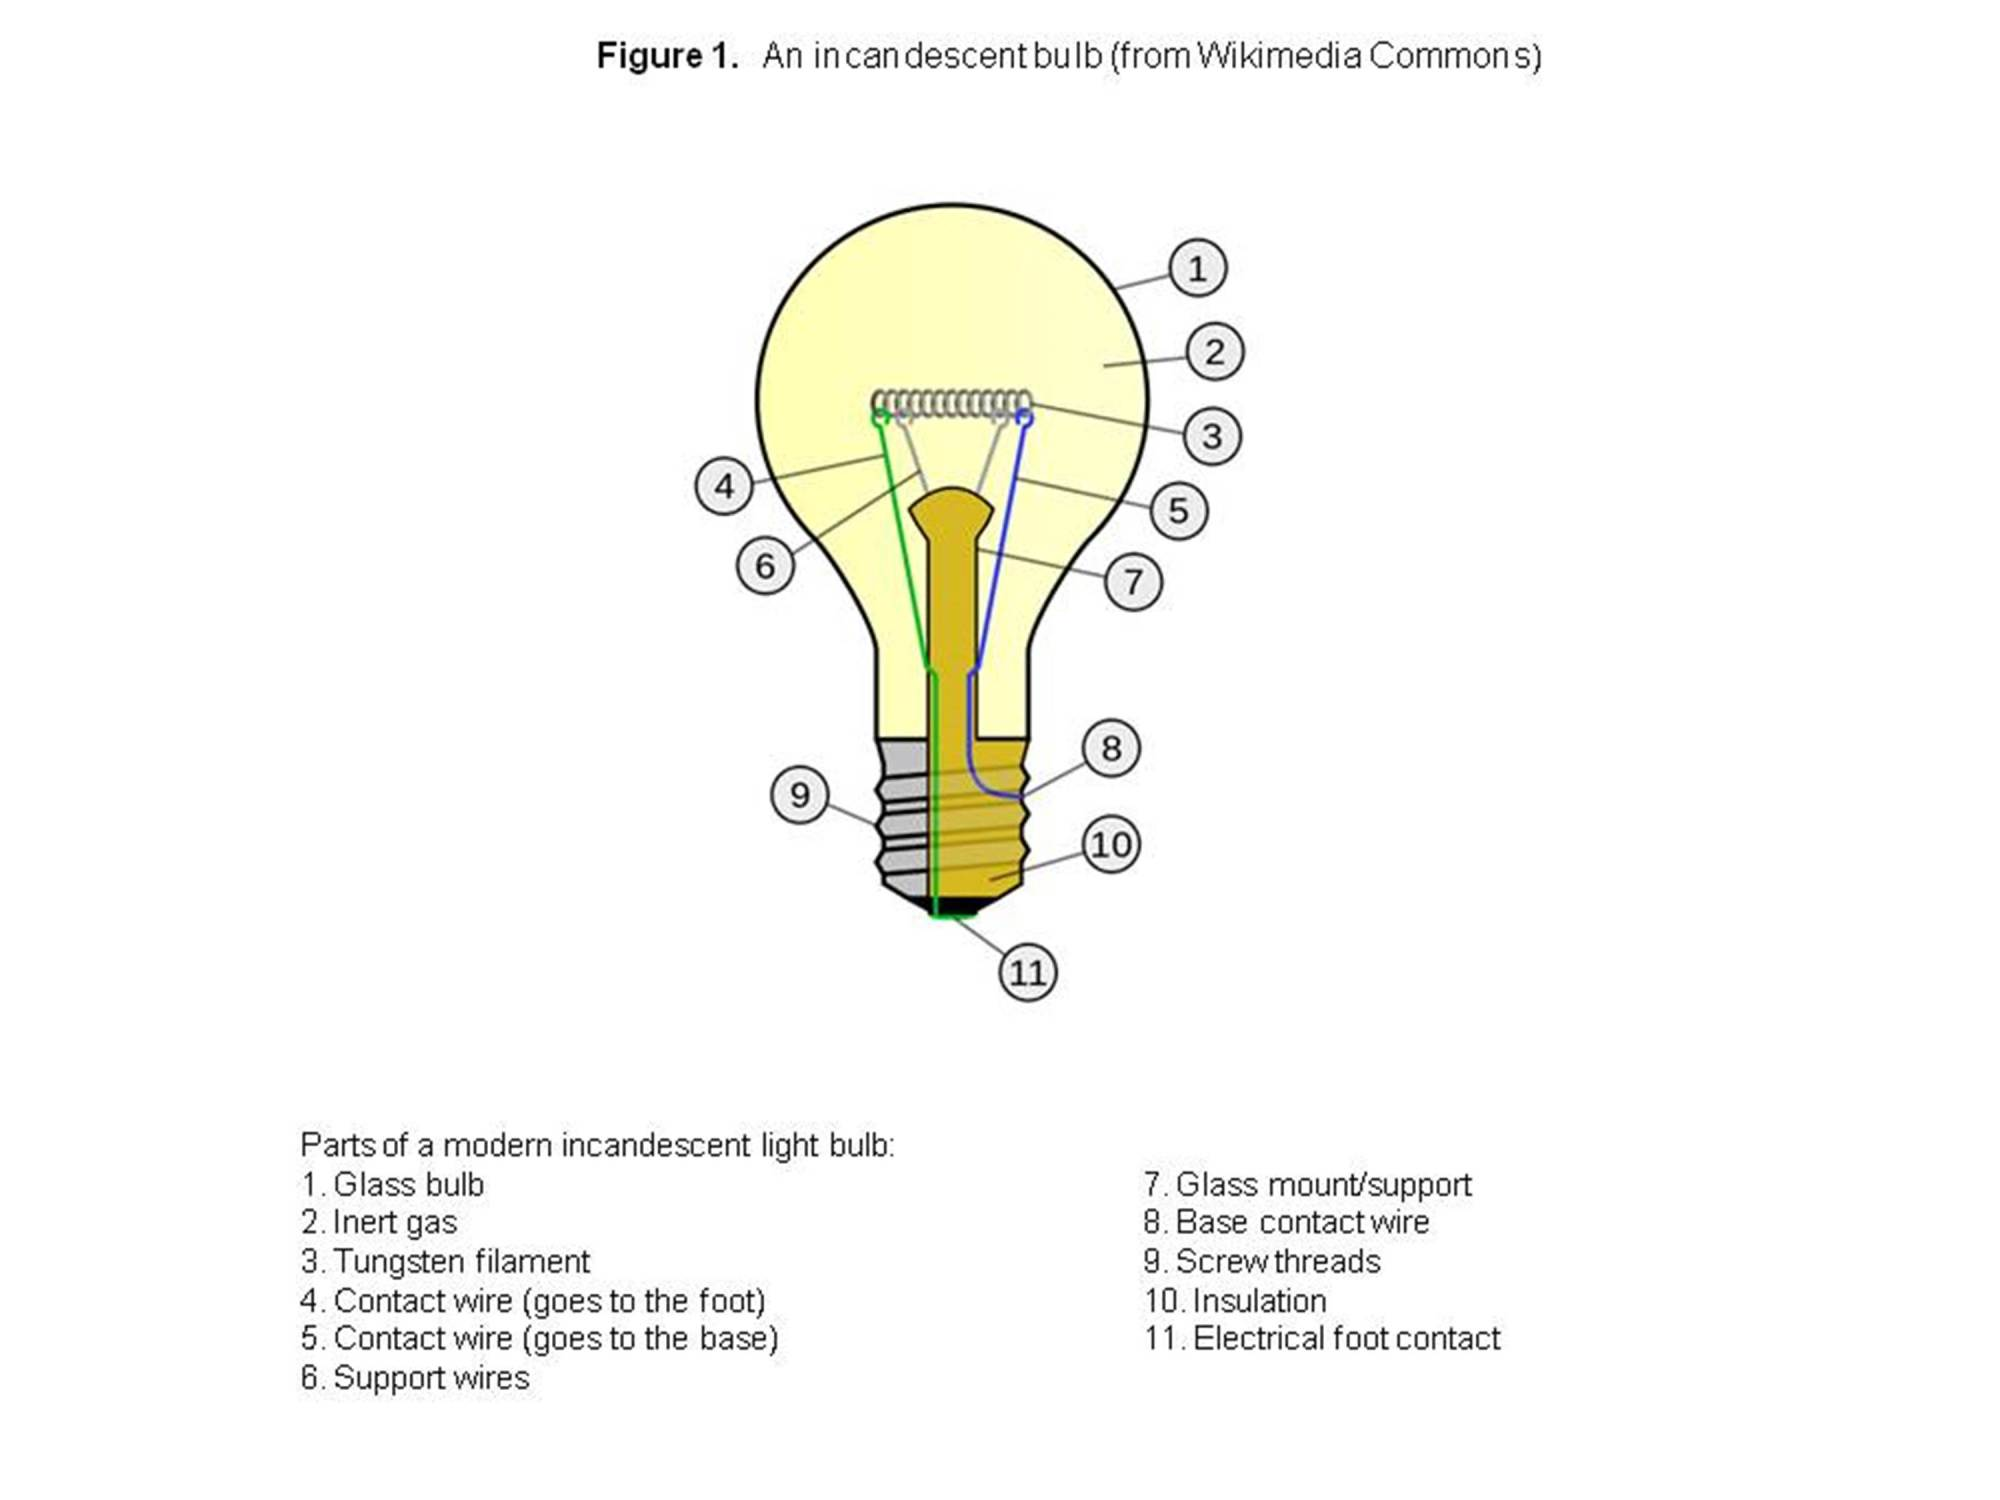 hight resolution of better ways to illuminate incandescent light bulb diagram diagram shows 11 parts